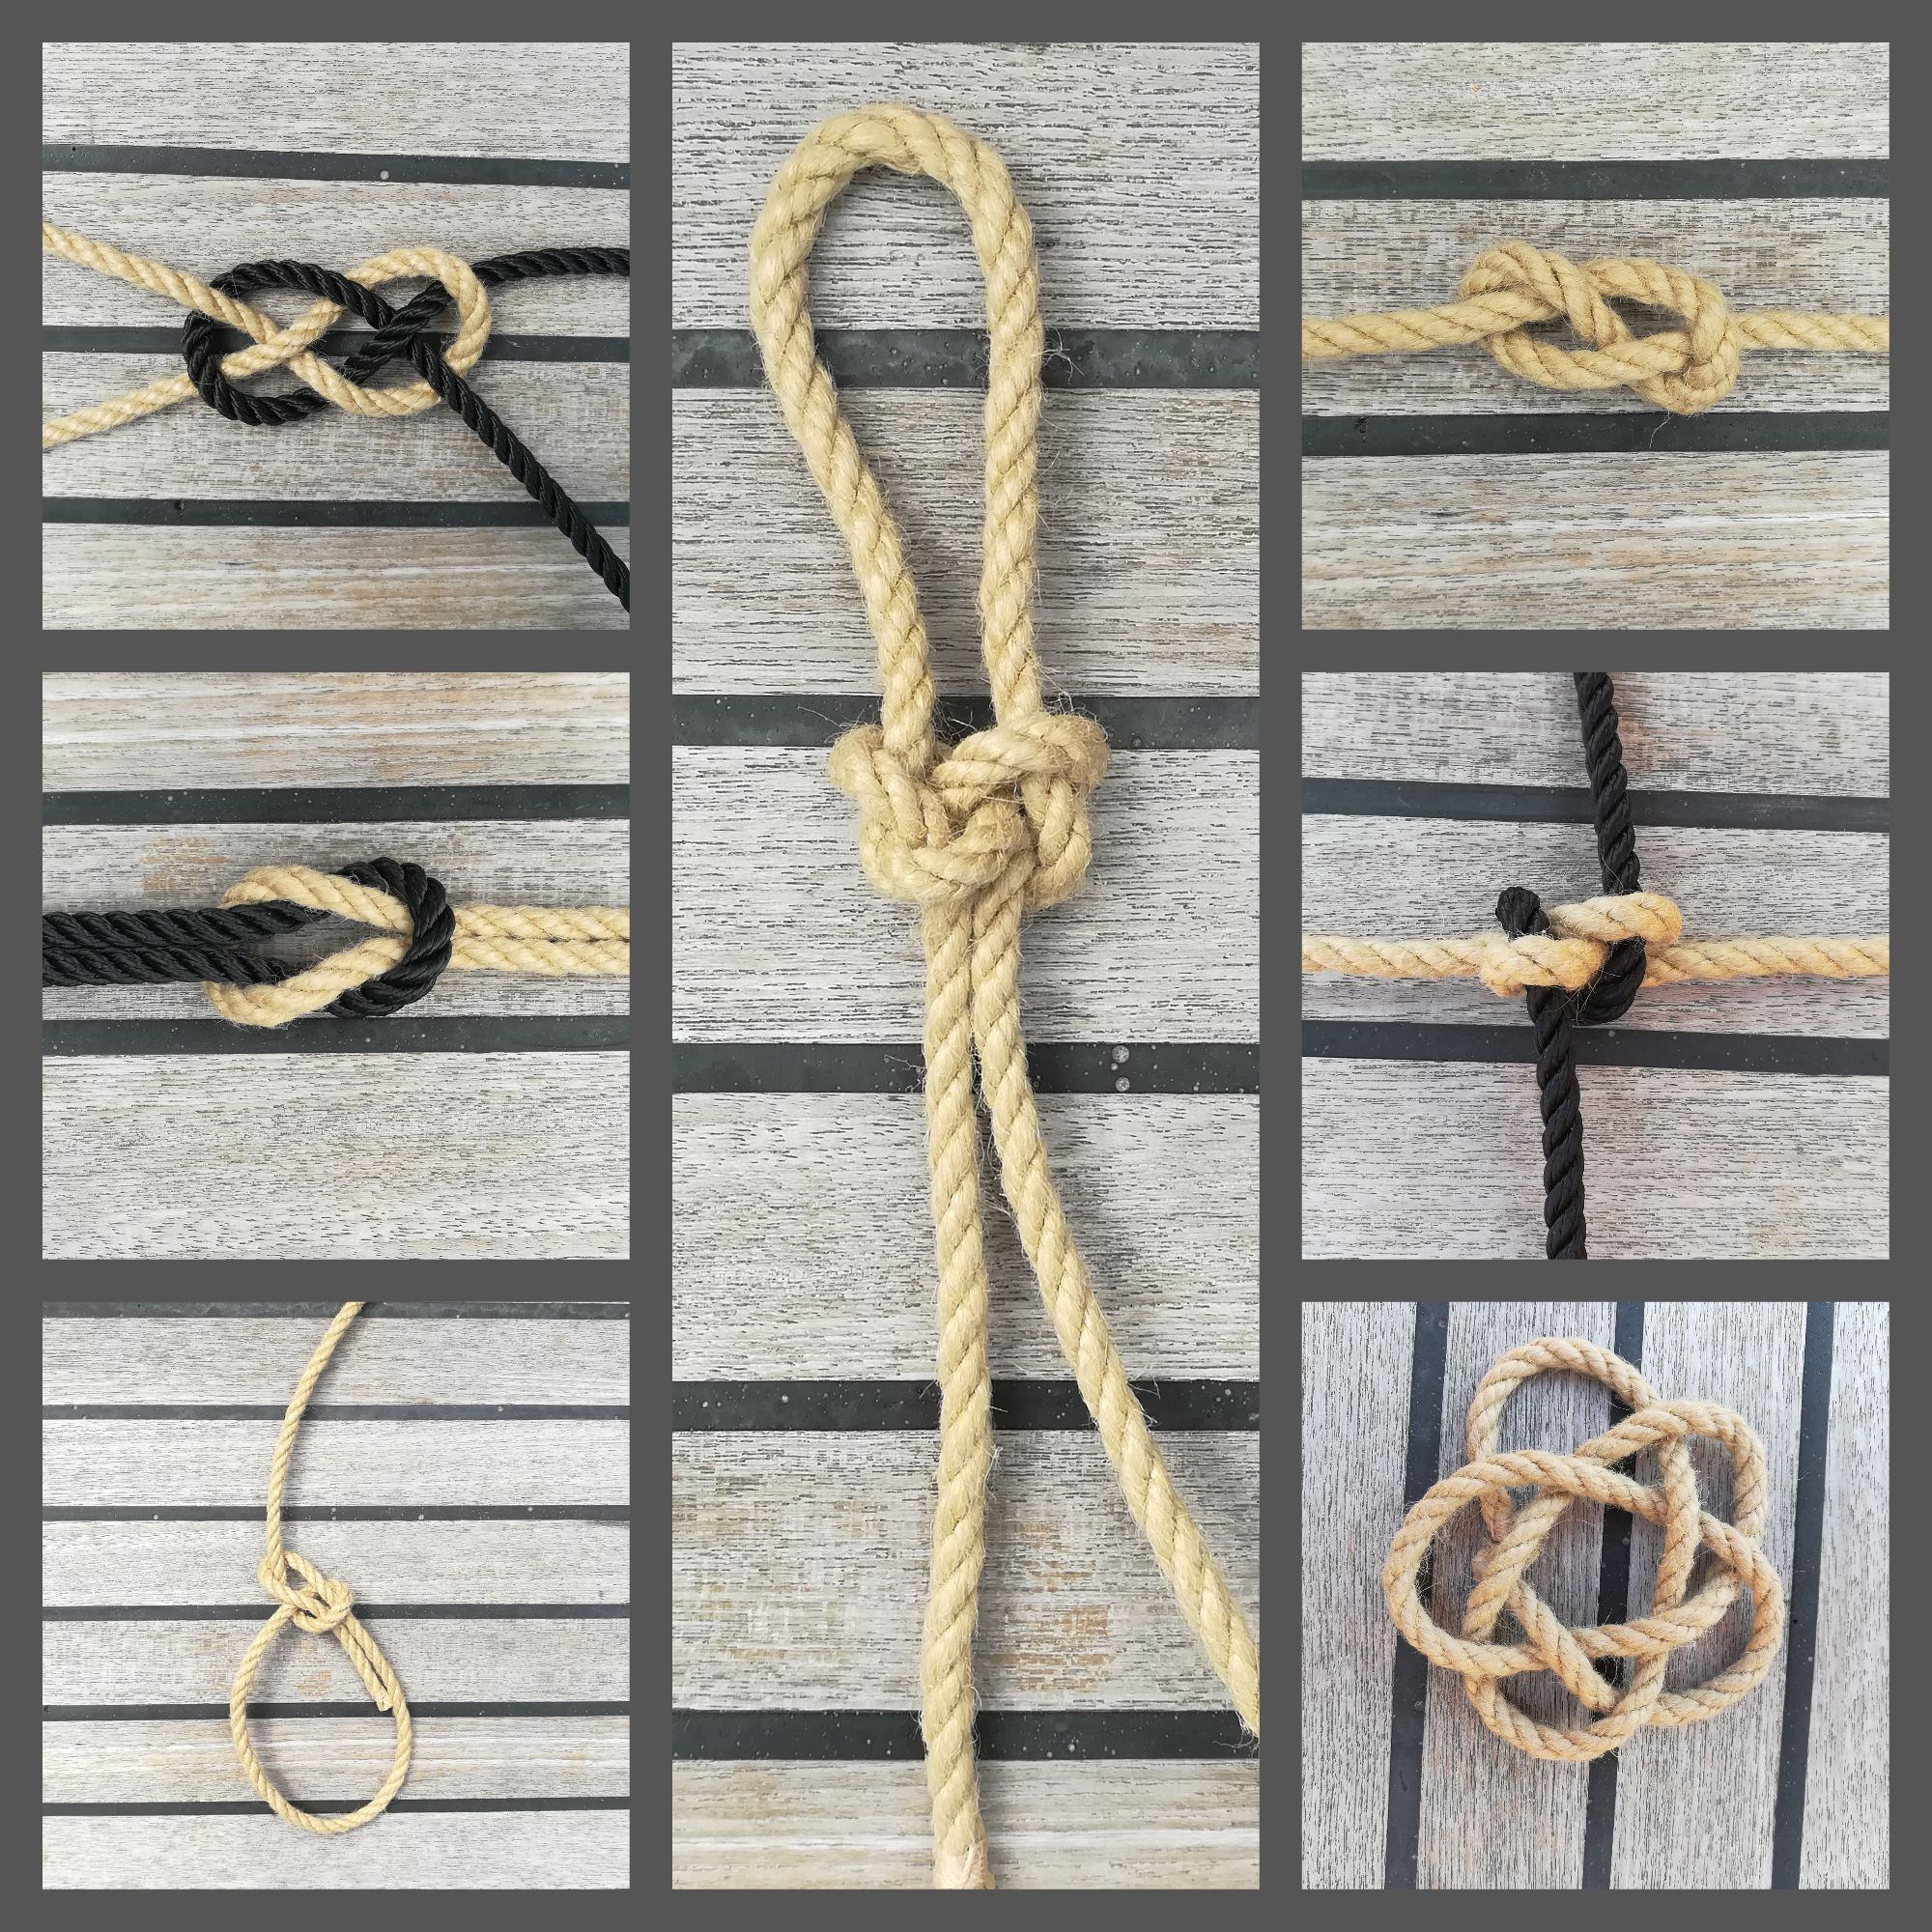 Specialist in Nautical Knots